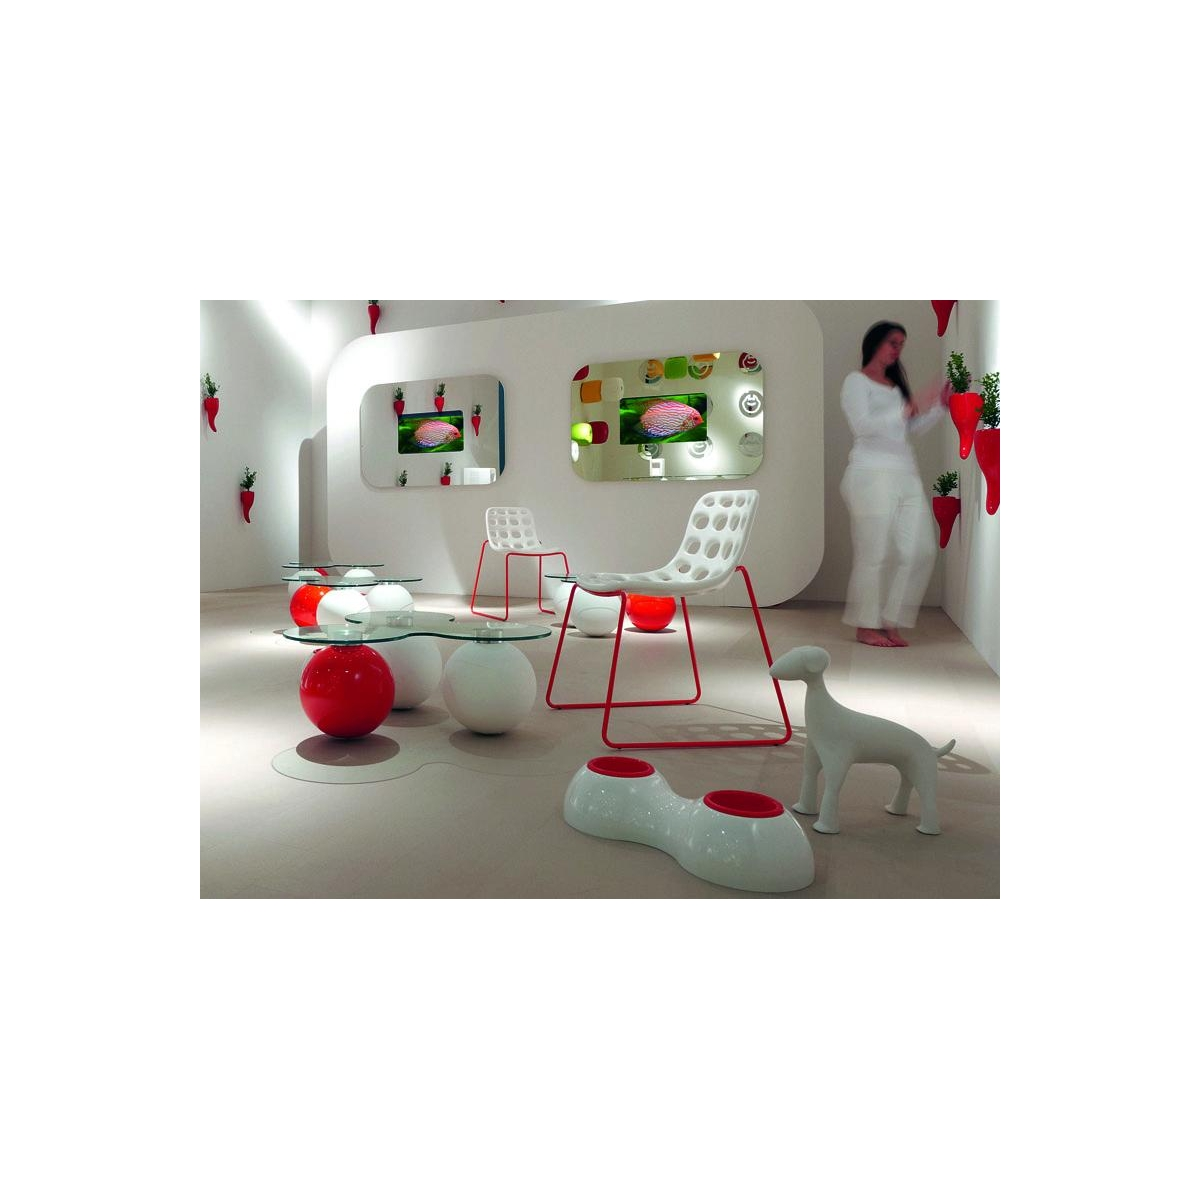 Pied de table basse MYYOUR Gigio, tables basses design MYYOUR, Tables -> Pieds De Table Basse